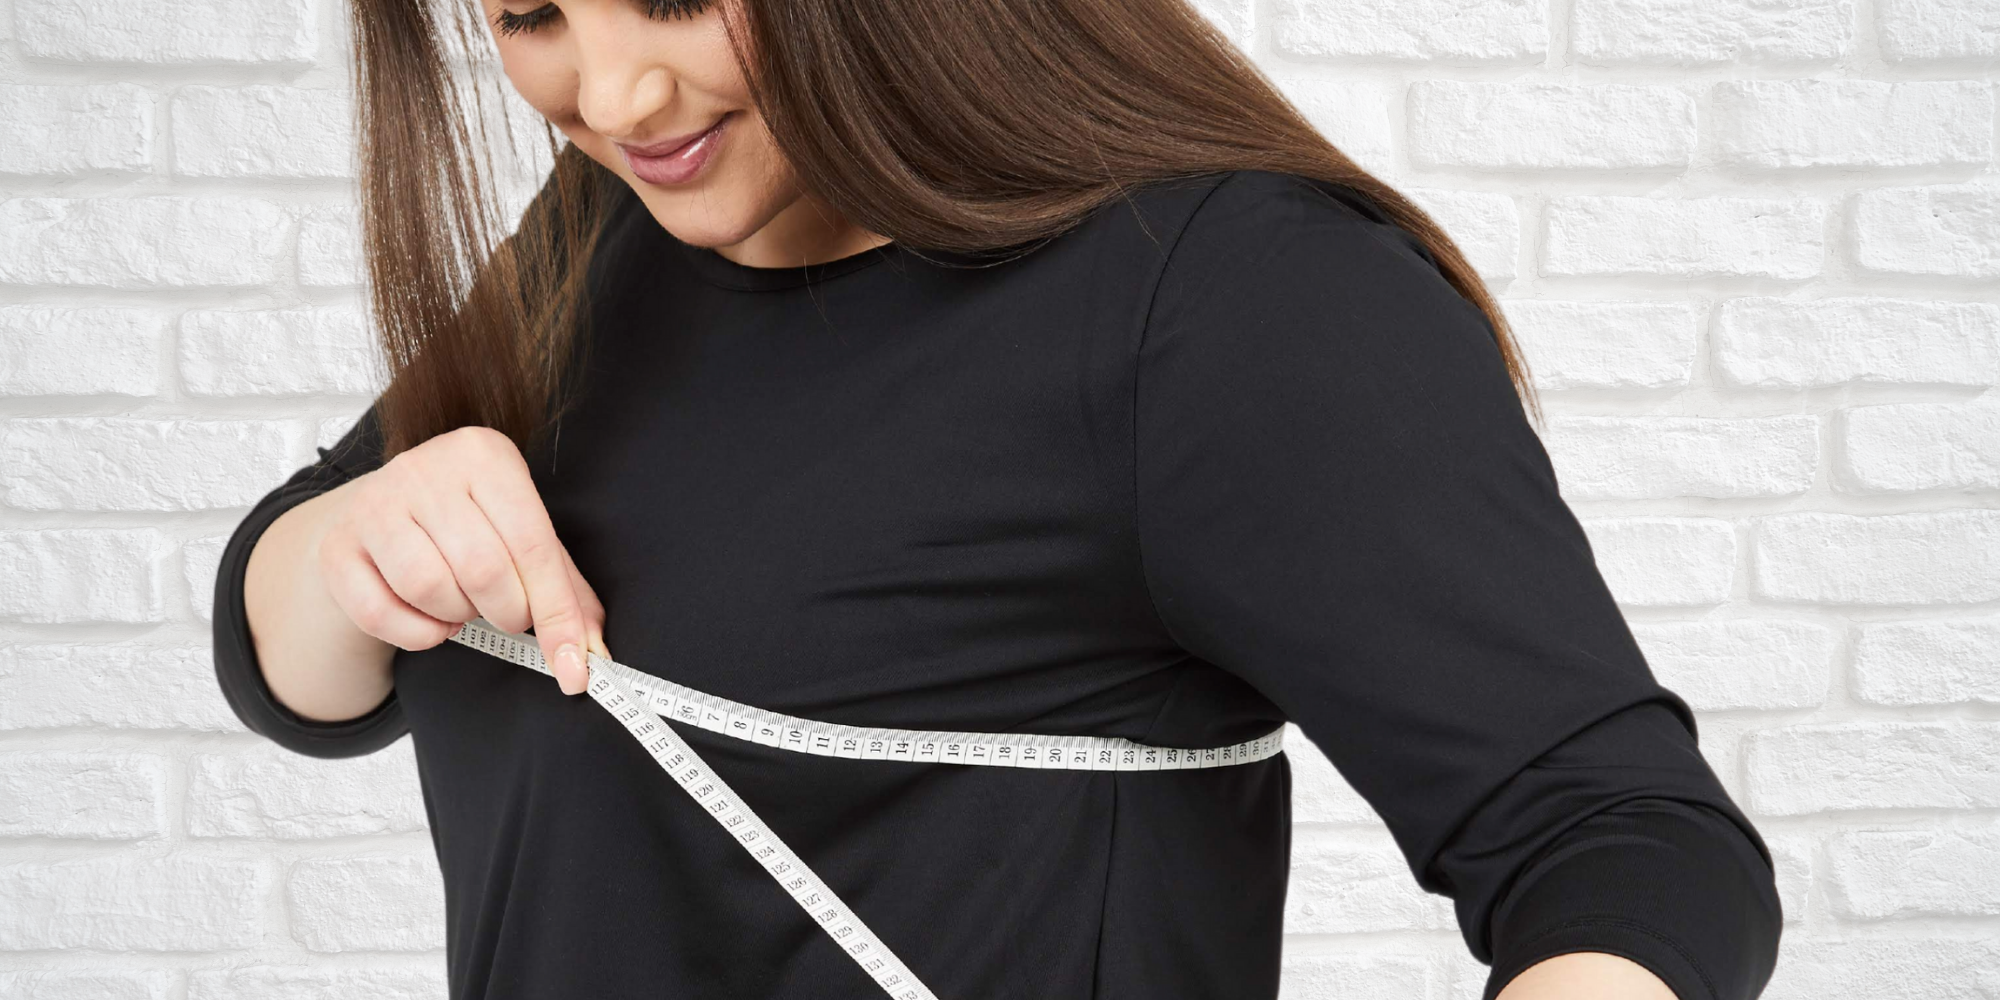 How to measure your body for best fit plus size ski clothing